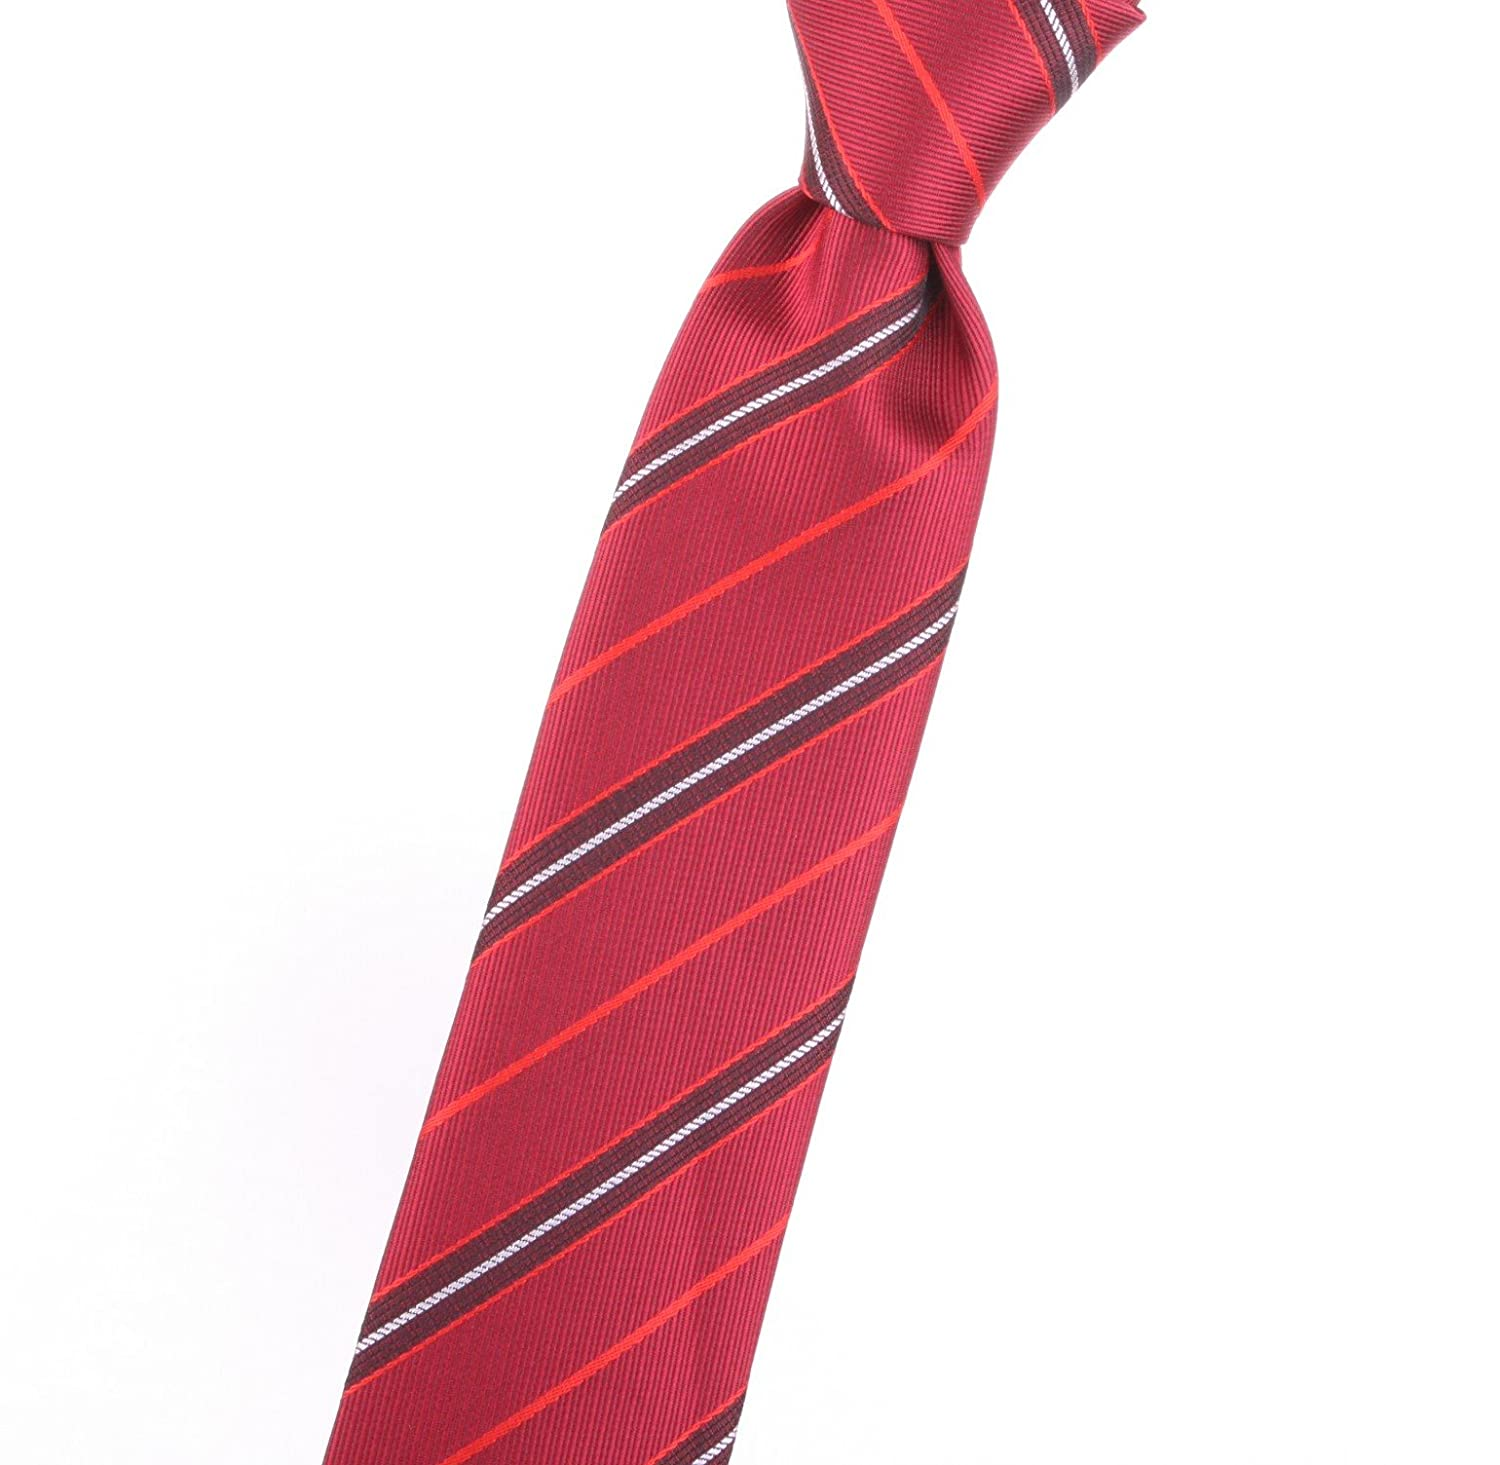 hot sell Kid's, Youth, Children's - Boy's tie with red, solid color, striped/stripes, design - by Jon vanDyk